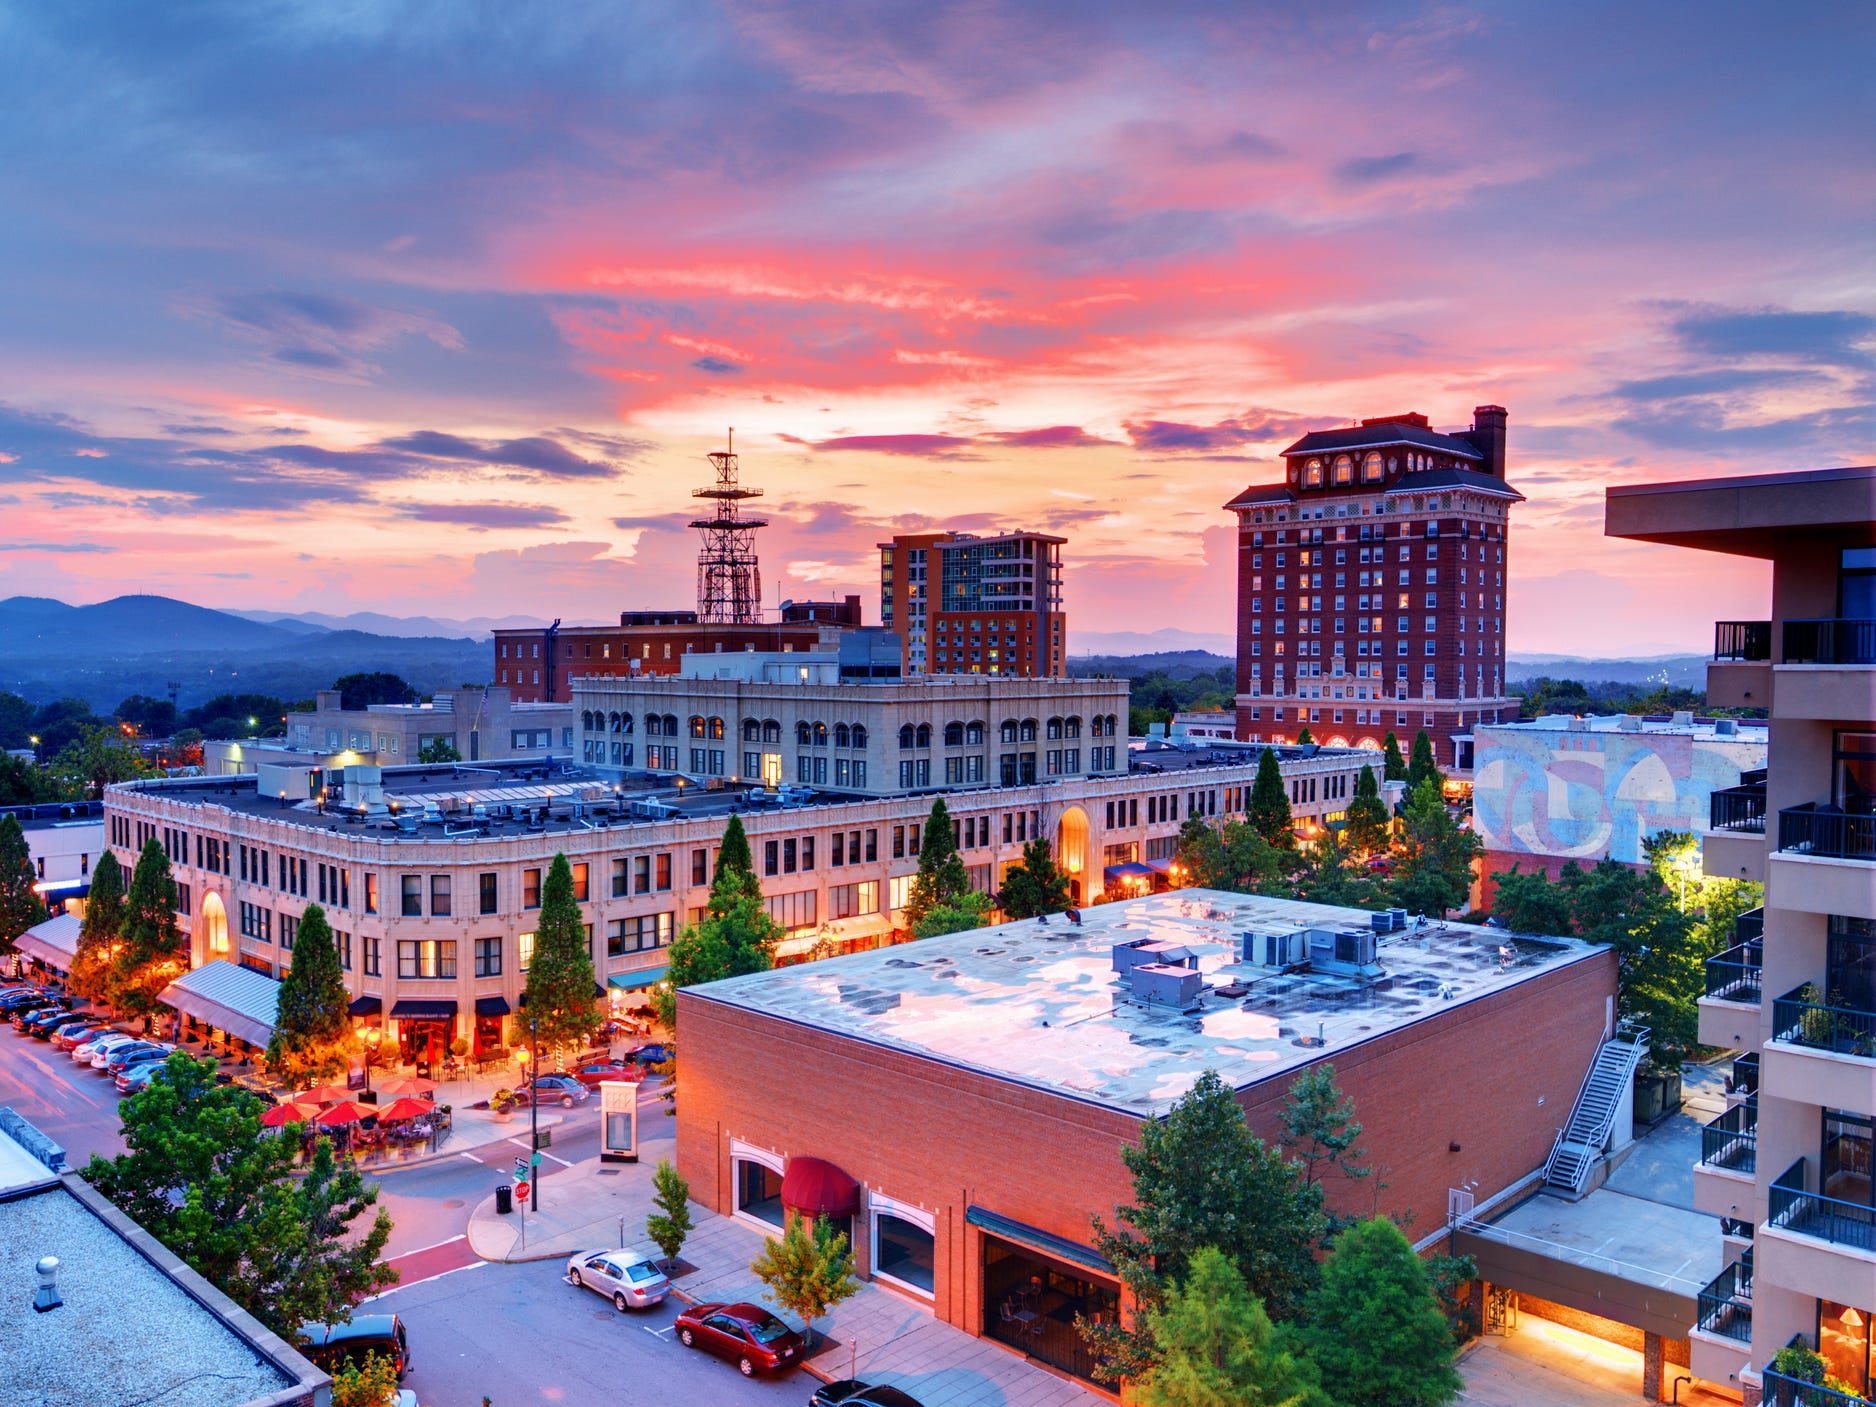 Asheville, North Carolina: With budget airlines expanding to the city, Asheville saw a 40 percent drop in airfares according to CheapOair. Enjoy the Blue Ridge Mountains for great value into the early winter months of 2019. Walk around the Art Deco downtown area, take a rooftop bar tour with amazing views, drink up at some of the city's 33 breweries in the South Slop District, or even take a winter hike.